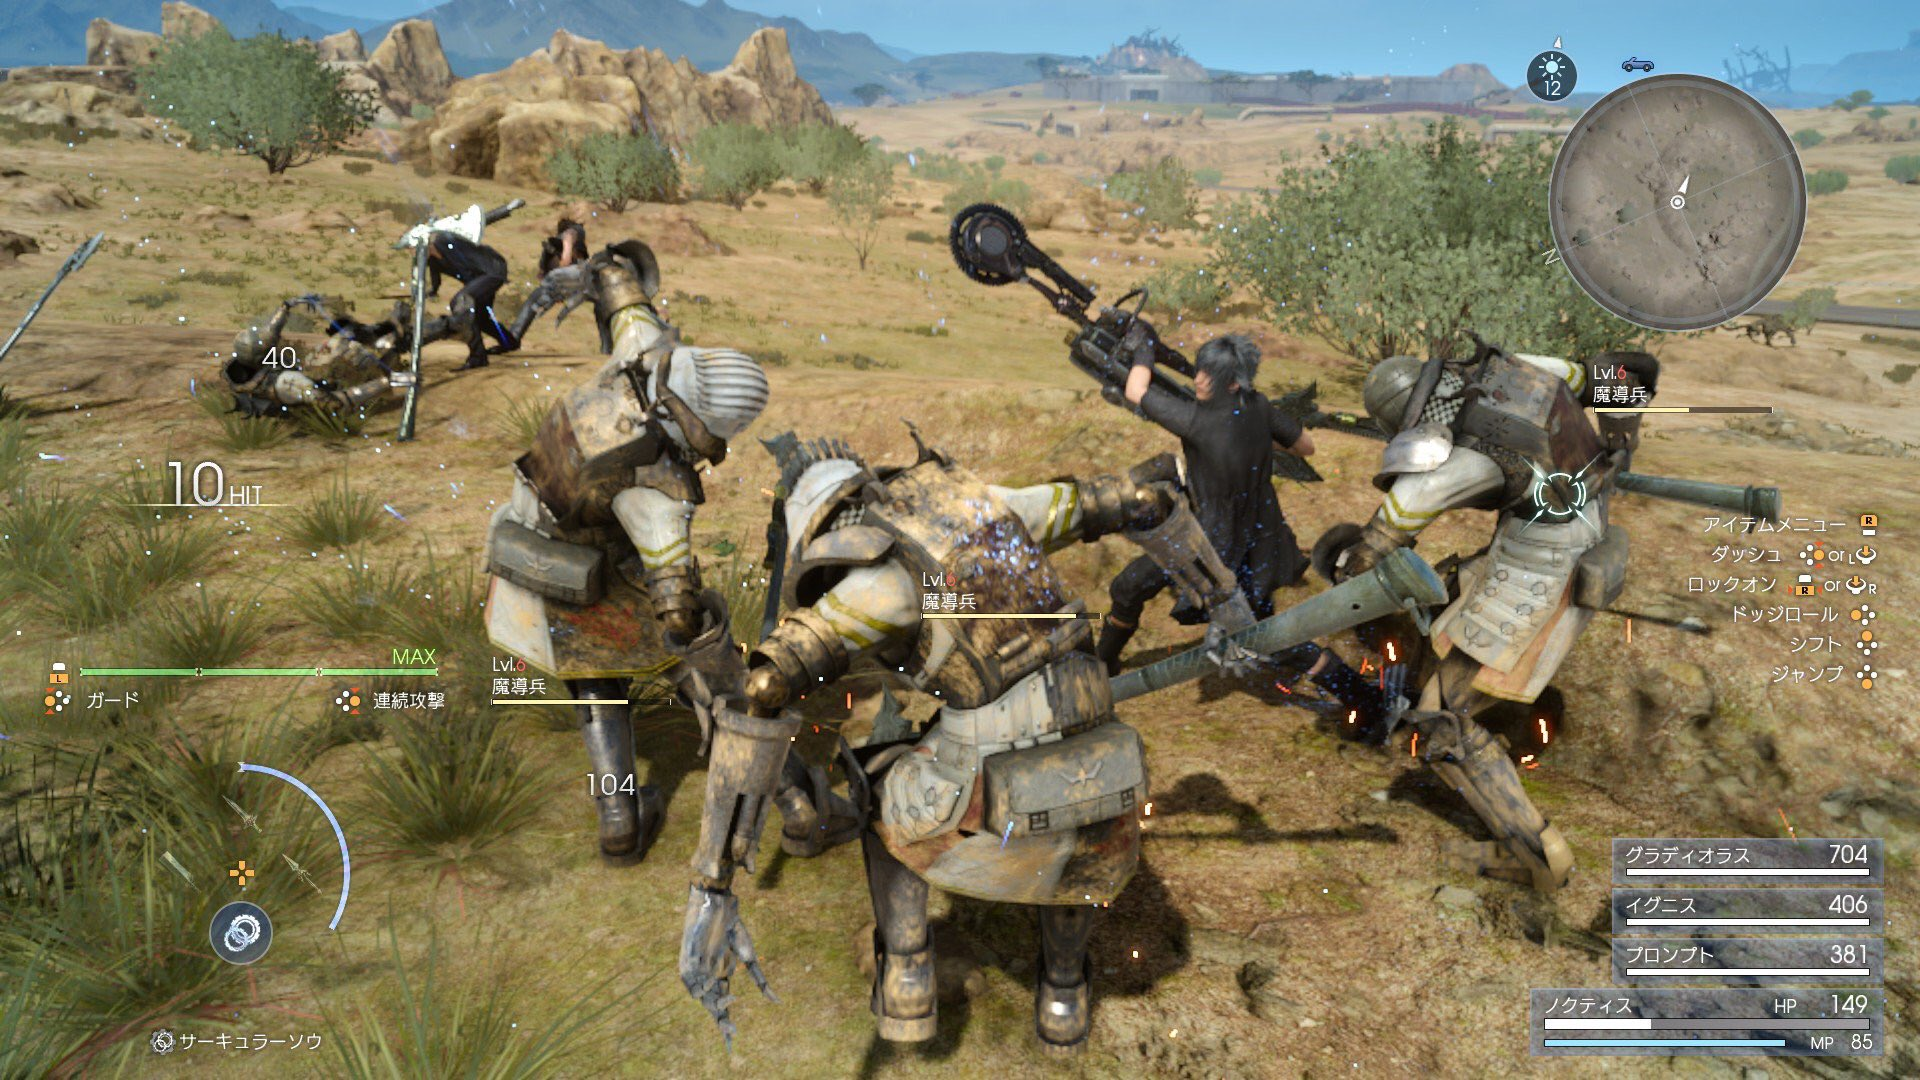 Final Fantasy Xv Gone Gold Multiplayer Co Op Dlc Announced